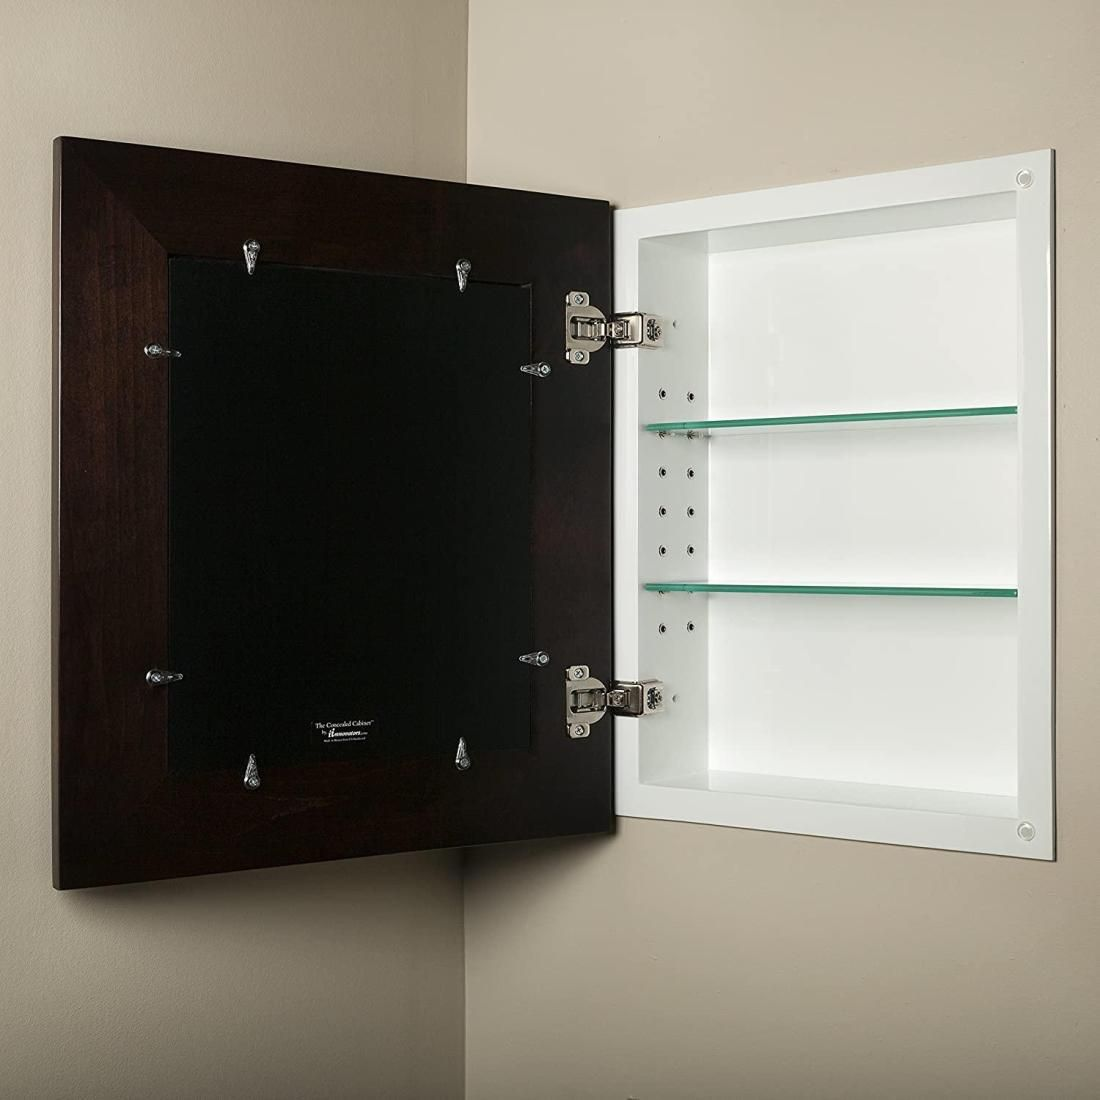 14x18 Concealed Medicine Cabinet Large A Recessed Mirrorless Medicine Cabinet With A Picture In 2020 Medicine Cabinet Mirror In Wall Medicine Cabinet Picture Frames